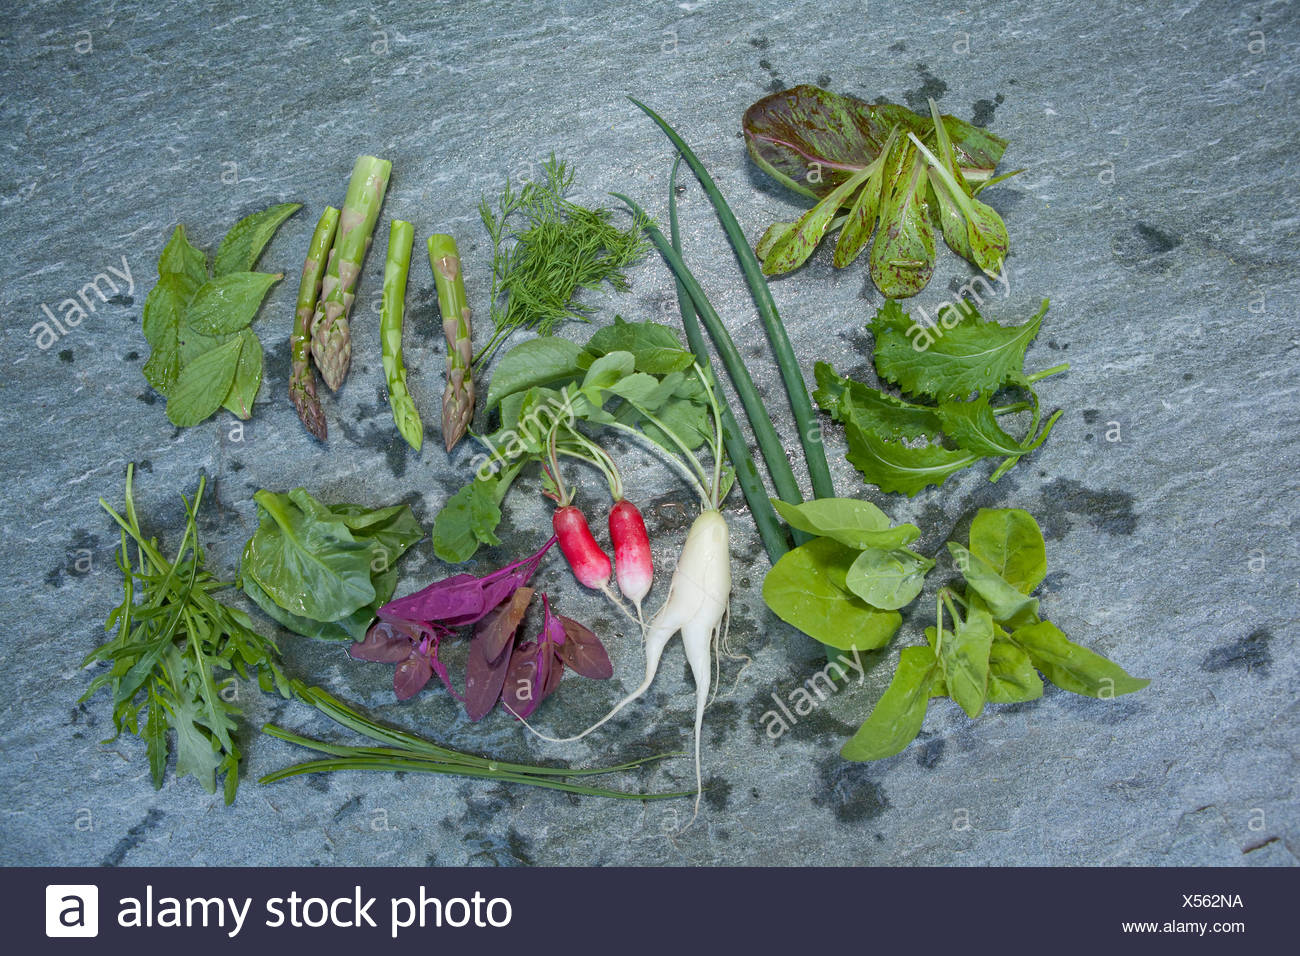 Vegetables, salads, lettuces, Hospezi, Trun, agriculture, canton, GR, Graubünden, Grisons, Switzerland, Europe, healthy, eat, Fo - Stock Image